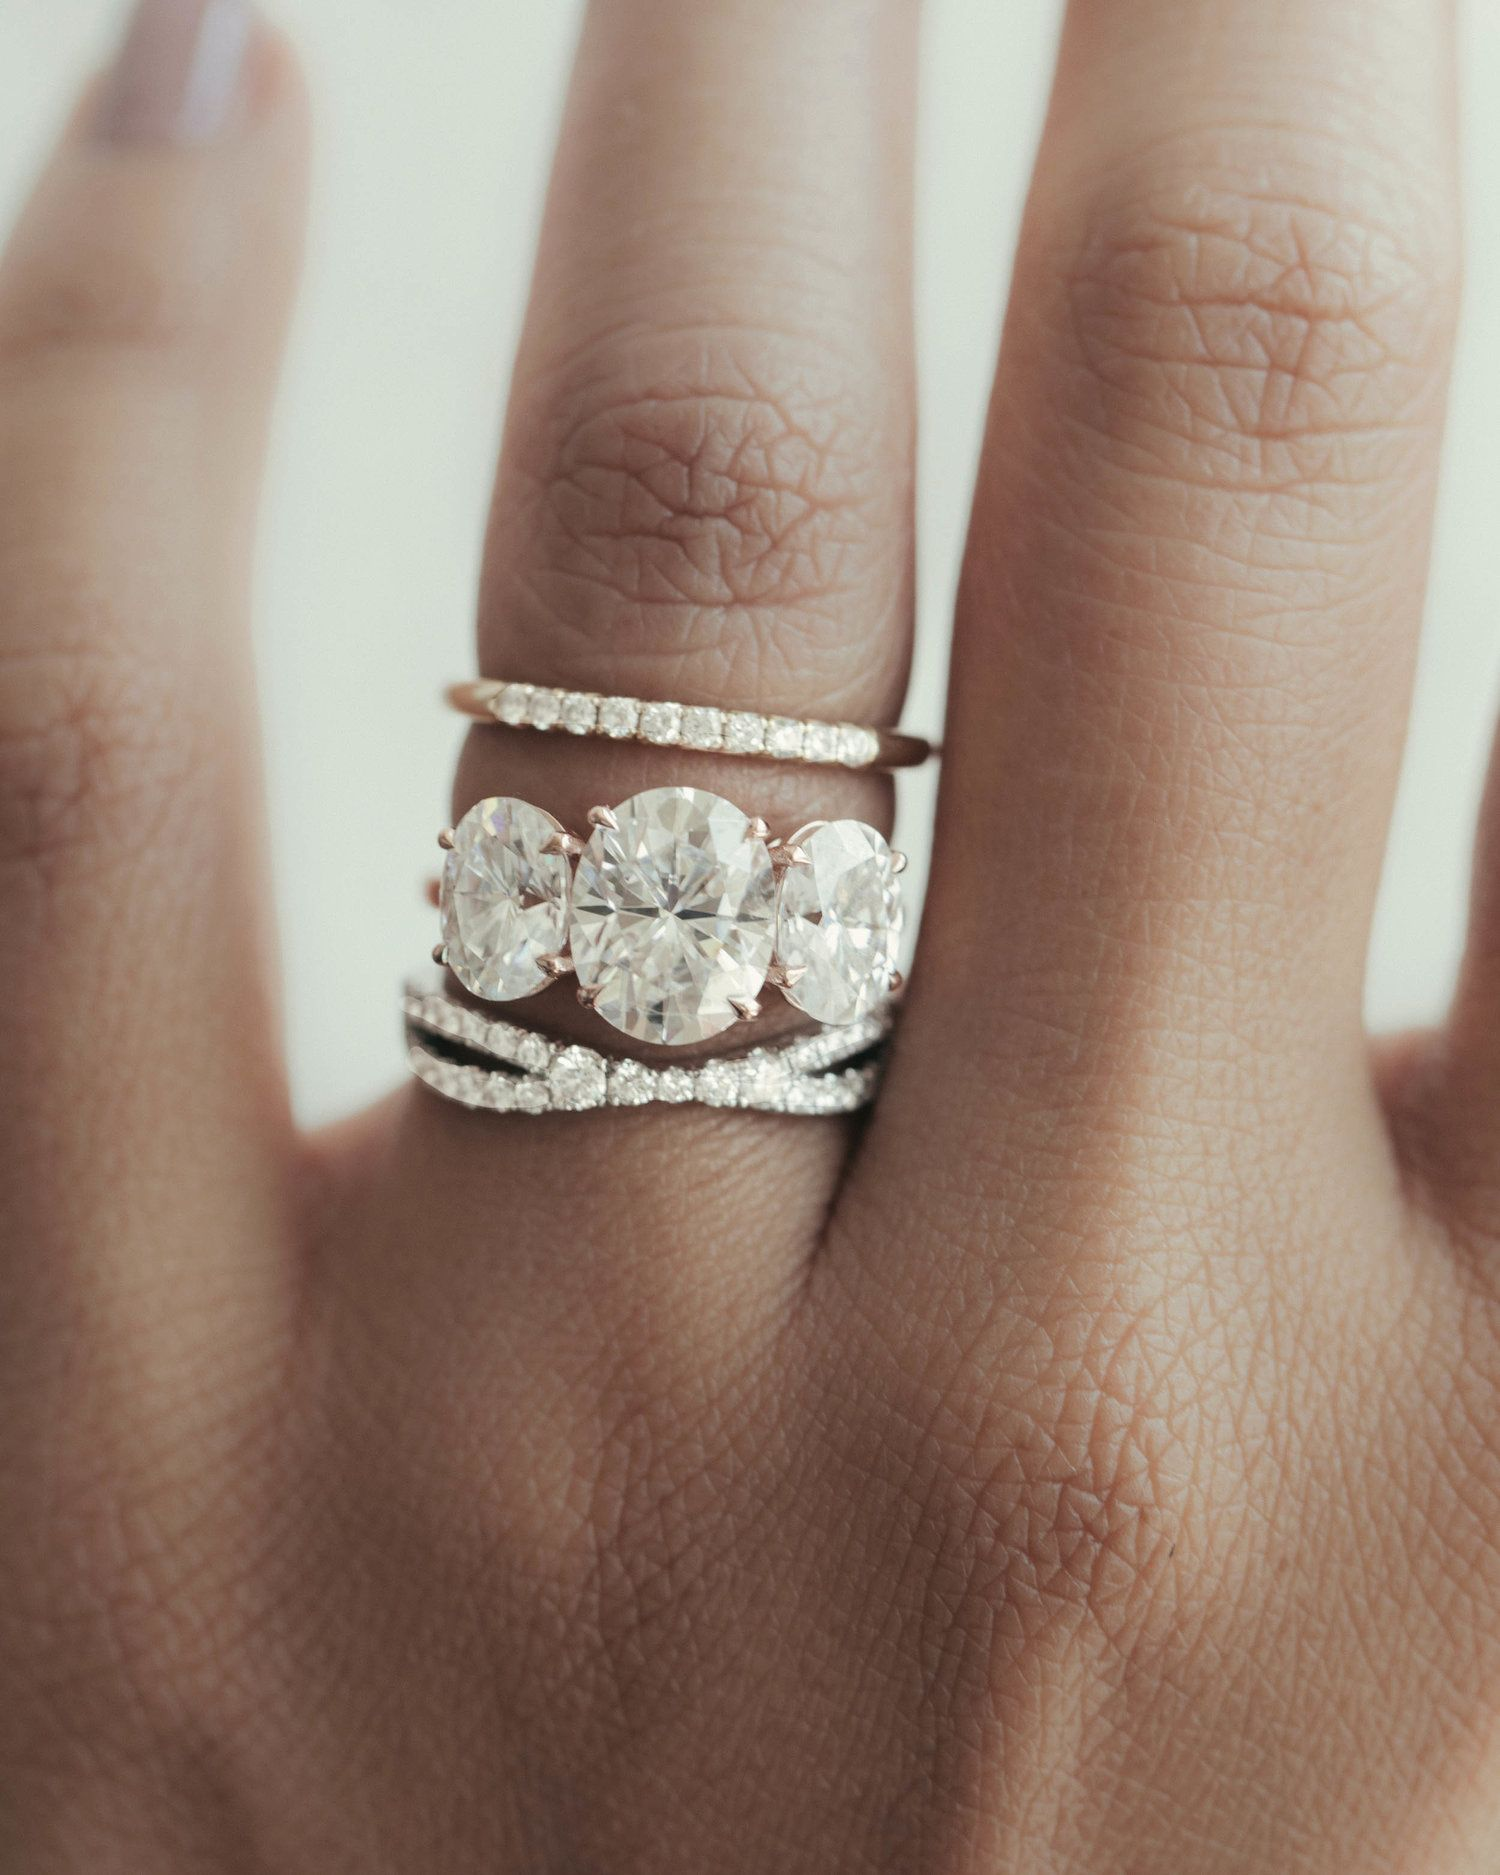 French Pave wedding band + Oval Three stone Engagement